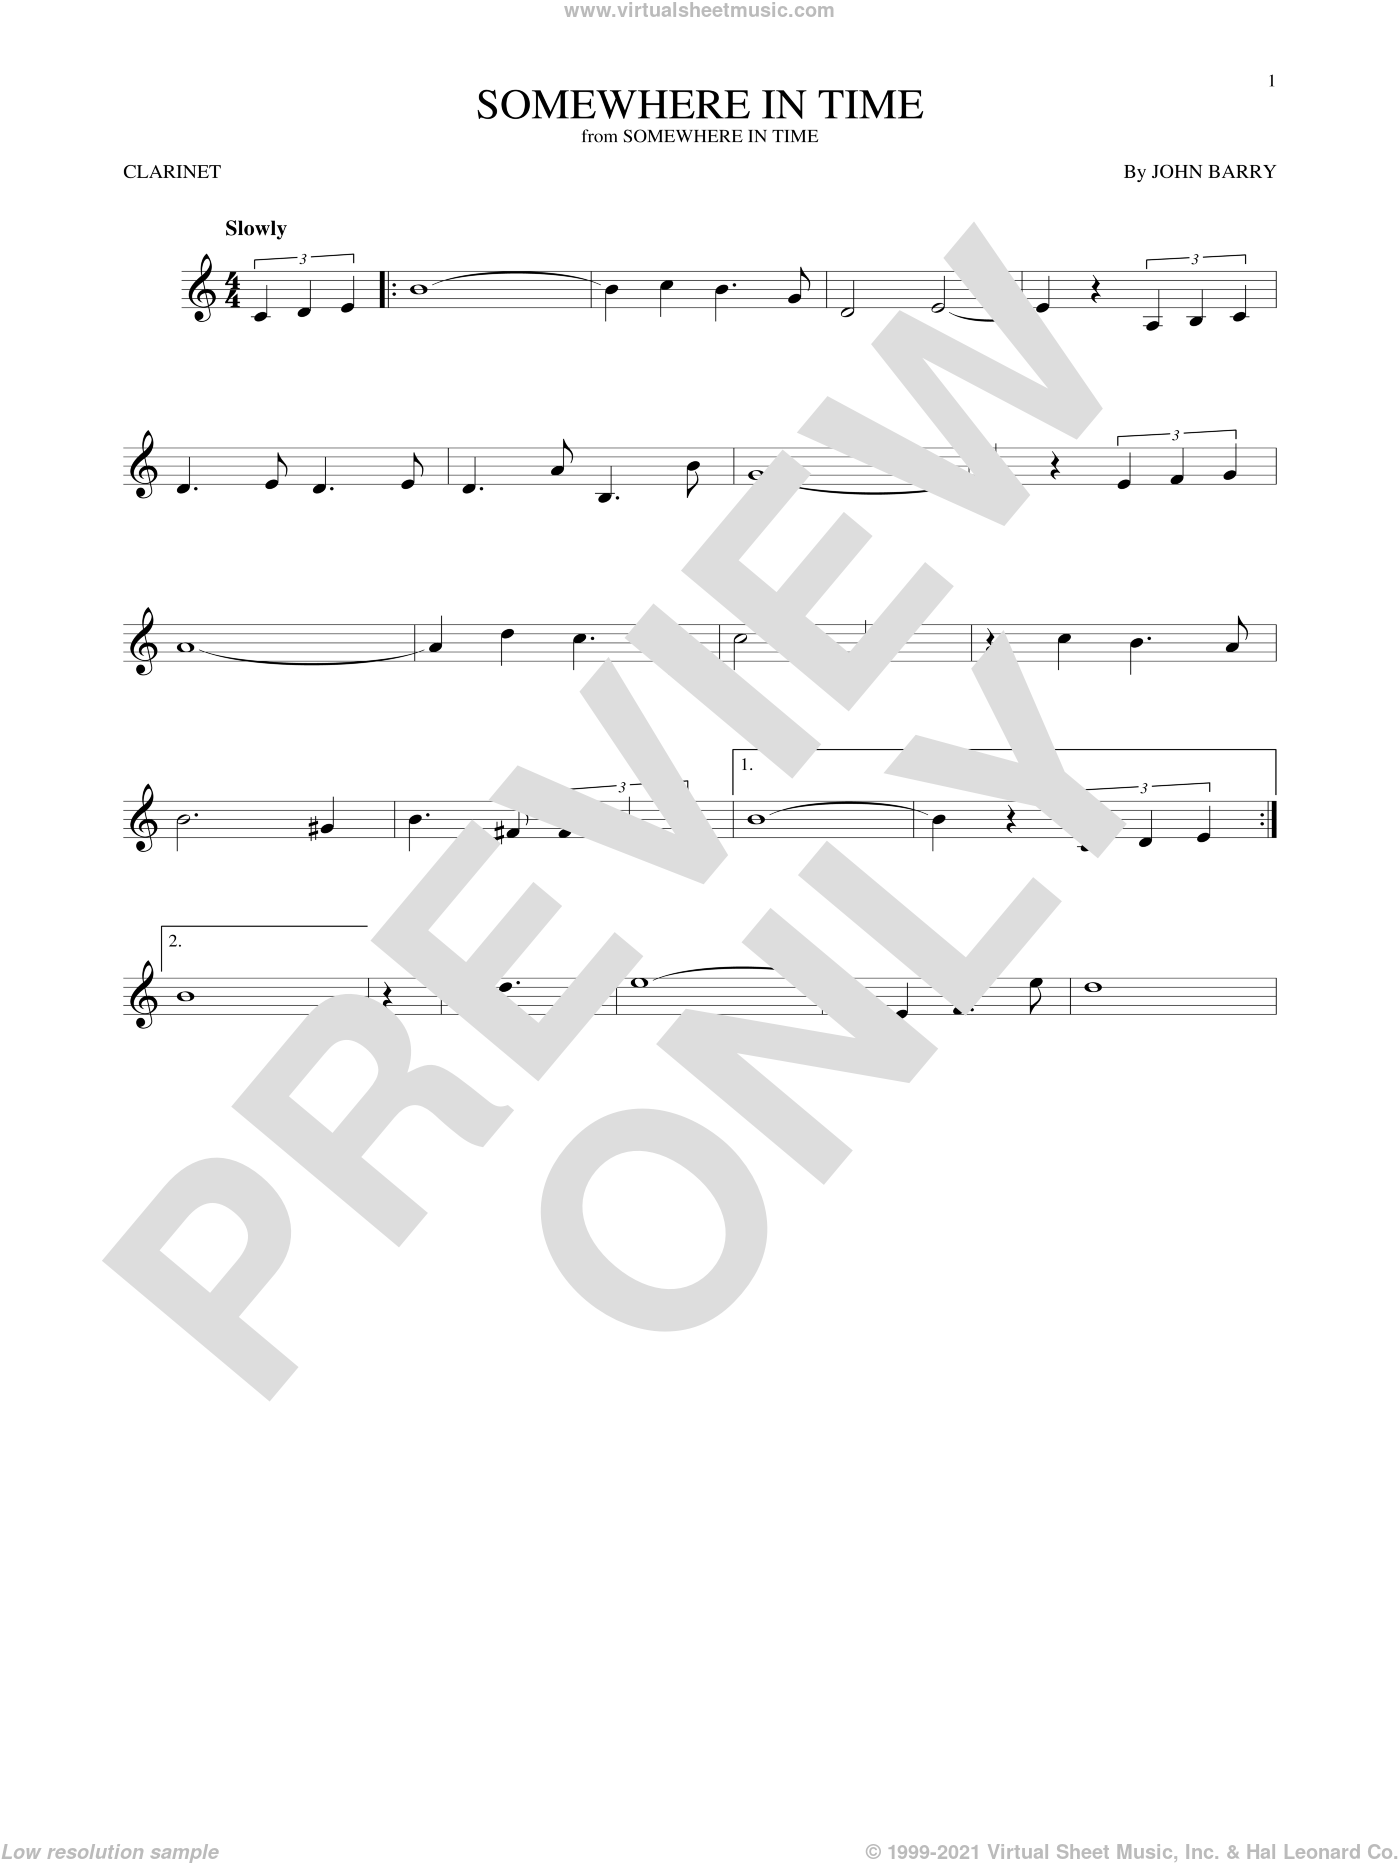 Somewhere In Time sheet music for clarinet solo by John Barry and B.A. Robertson, intermediate skill level